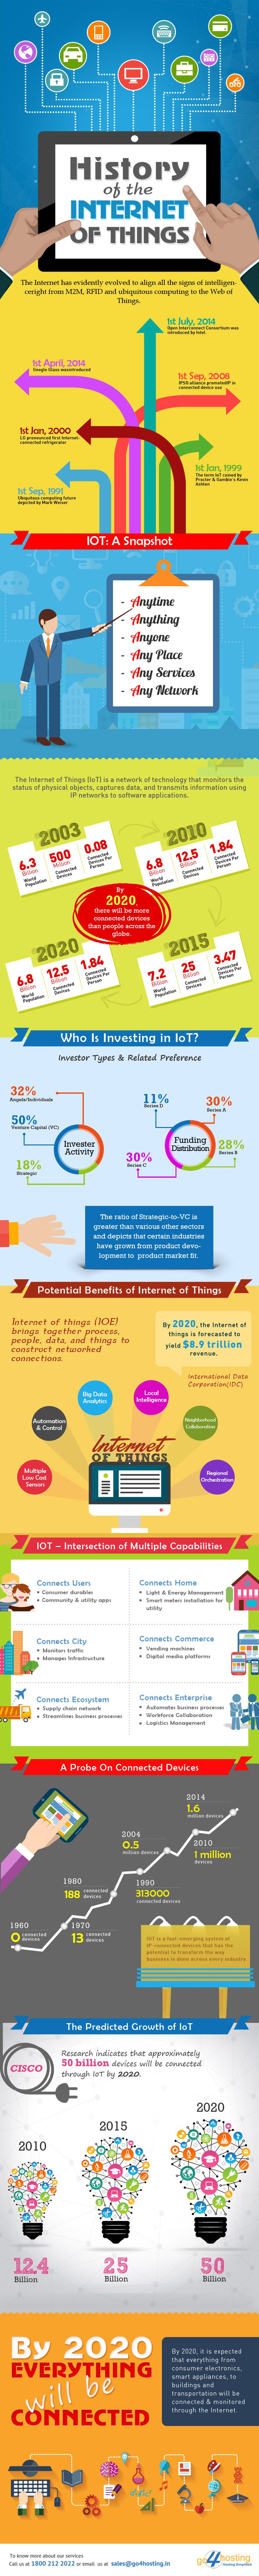 The history of Internet of Things (1991 - 2014) - Infographic Who is investing in IoT? Potential benefits, Intersection of Multiple capabilities across homes, cities, commerce, enterprise - Tech IOT Today